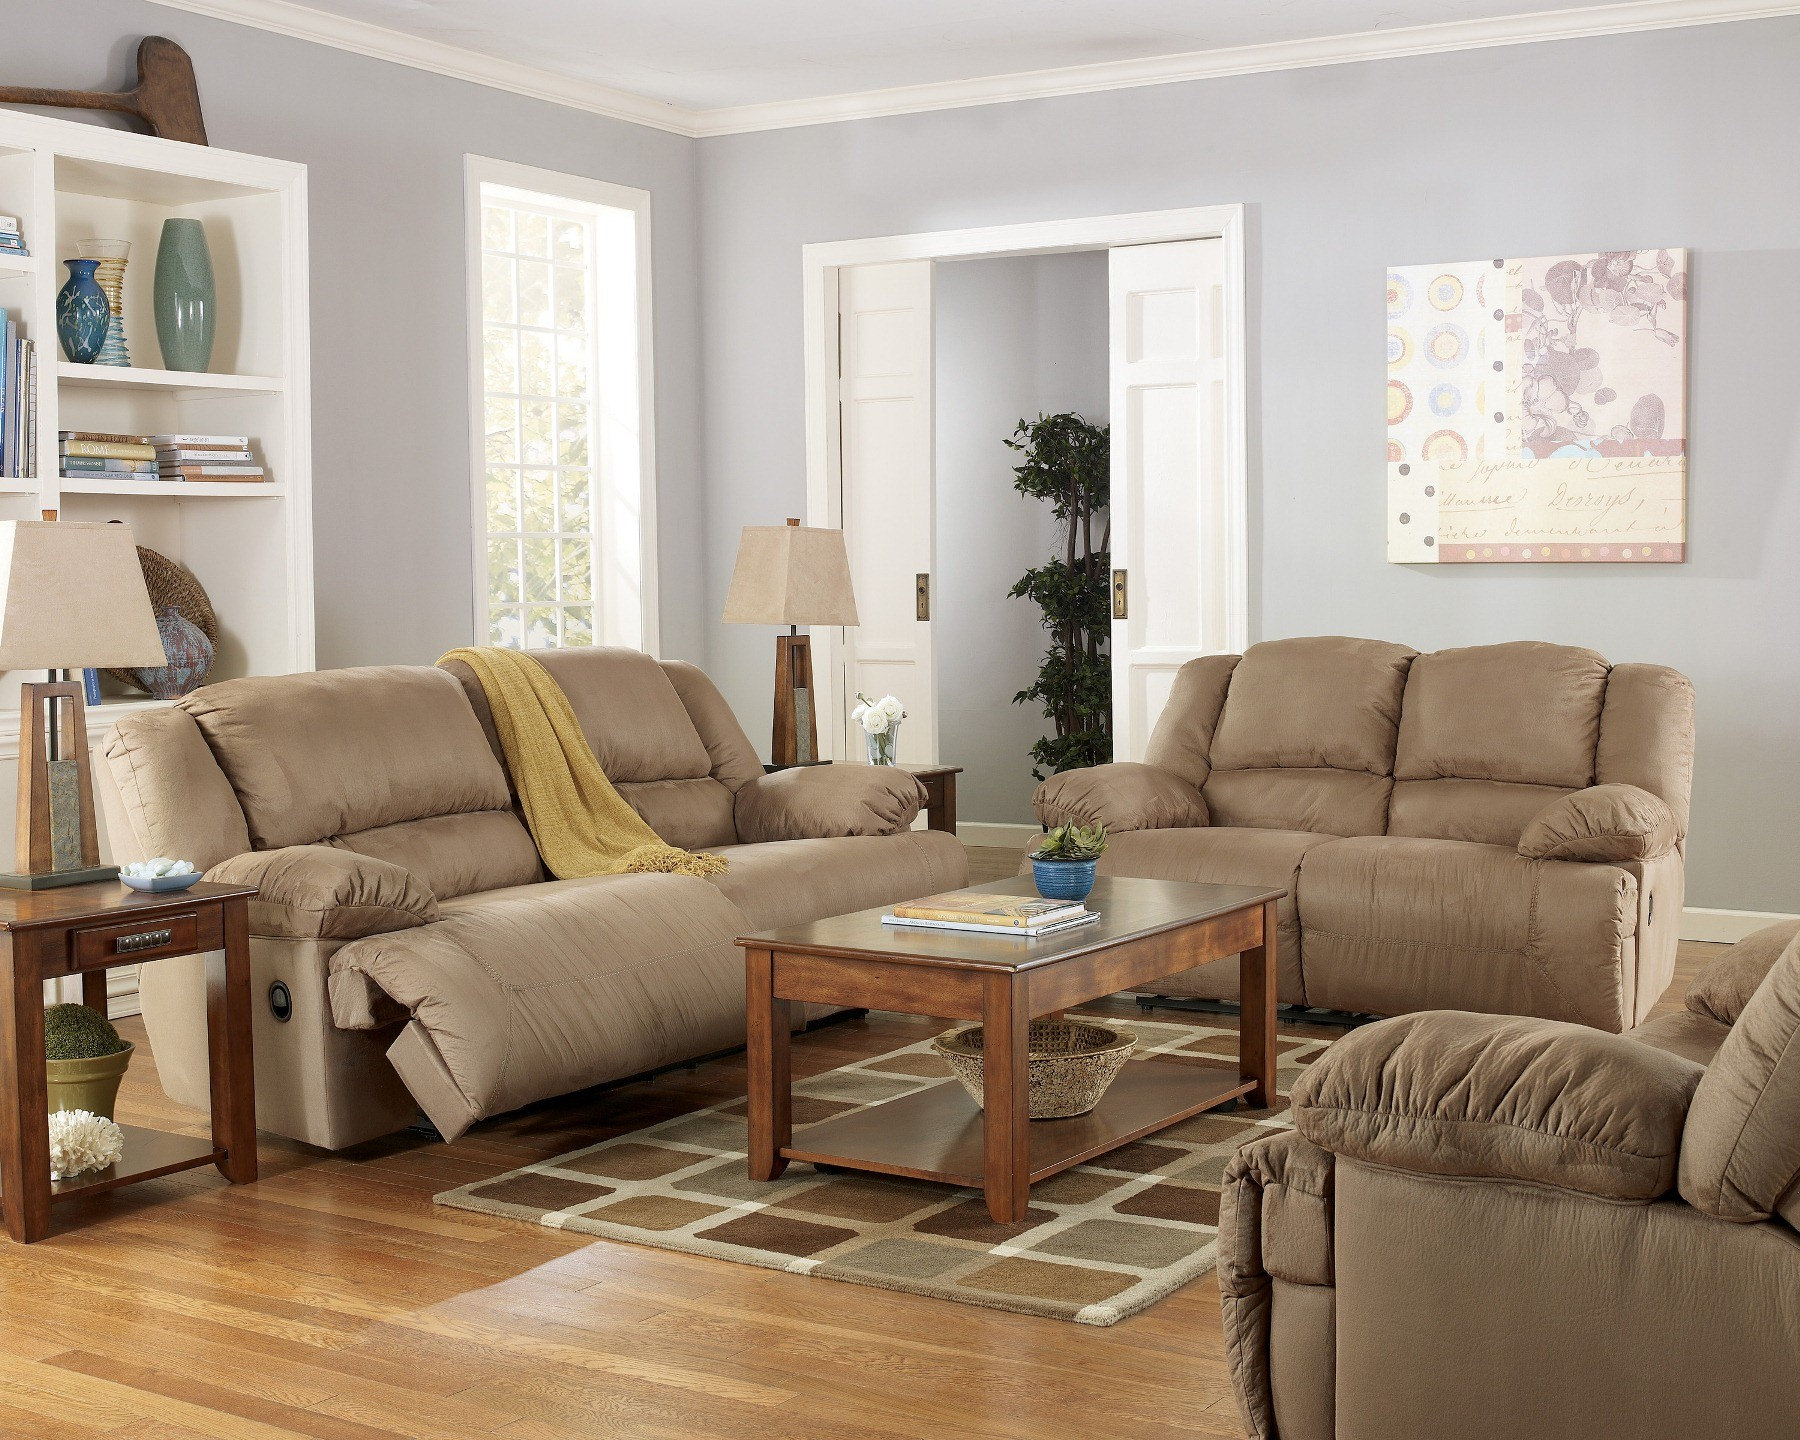 Hogan Mocha Reclining Living Room Set From Ashley 57802